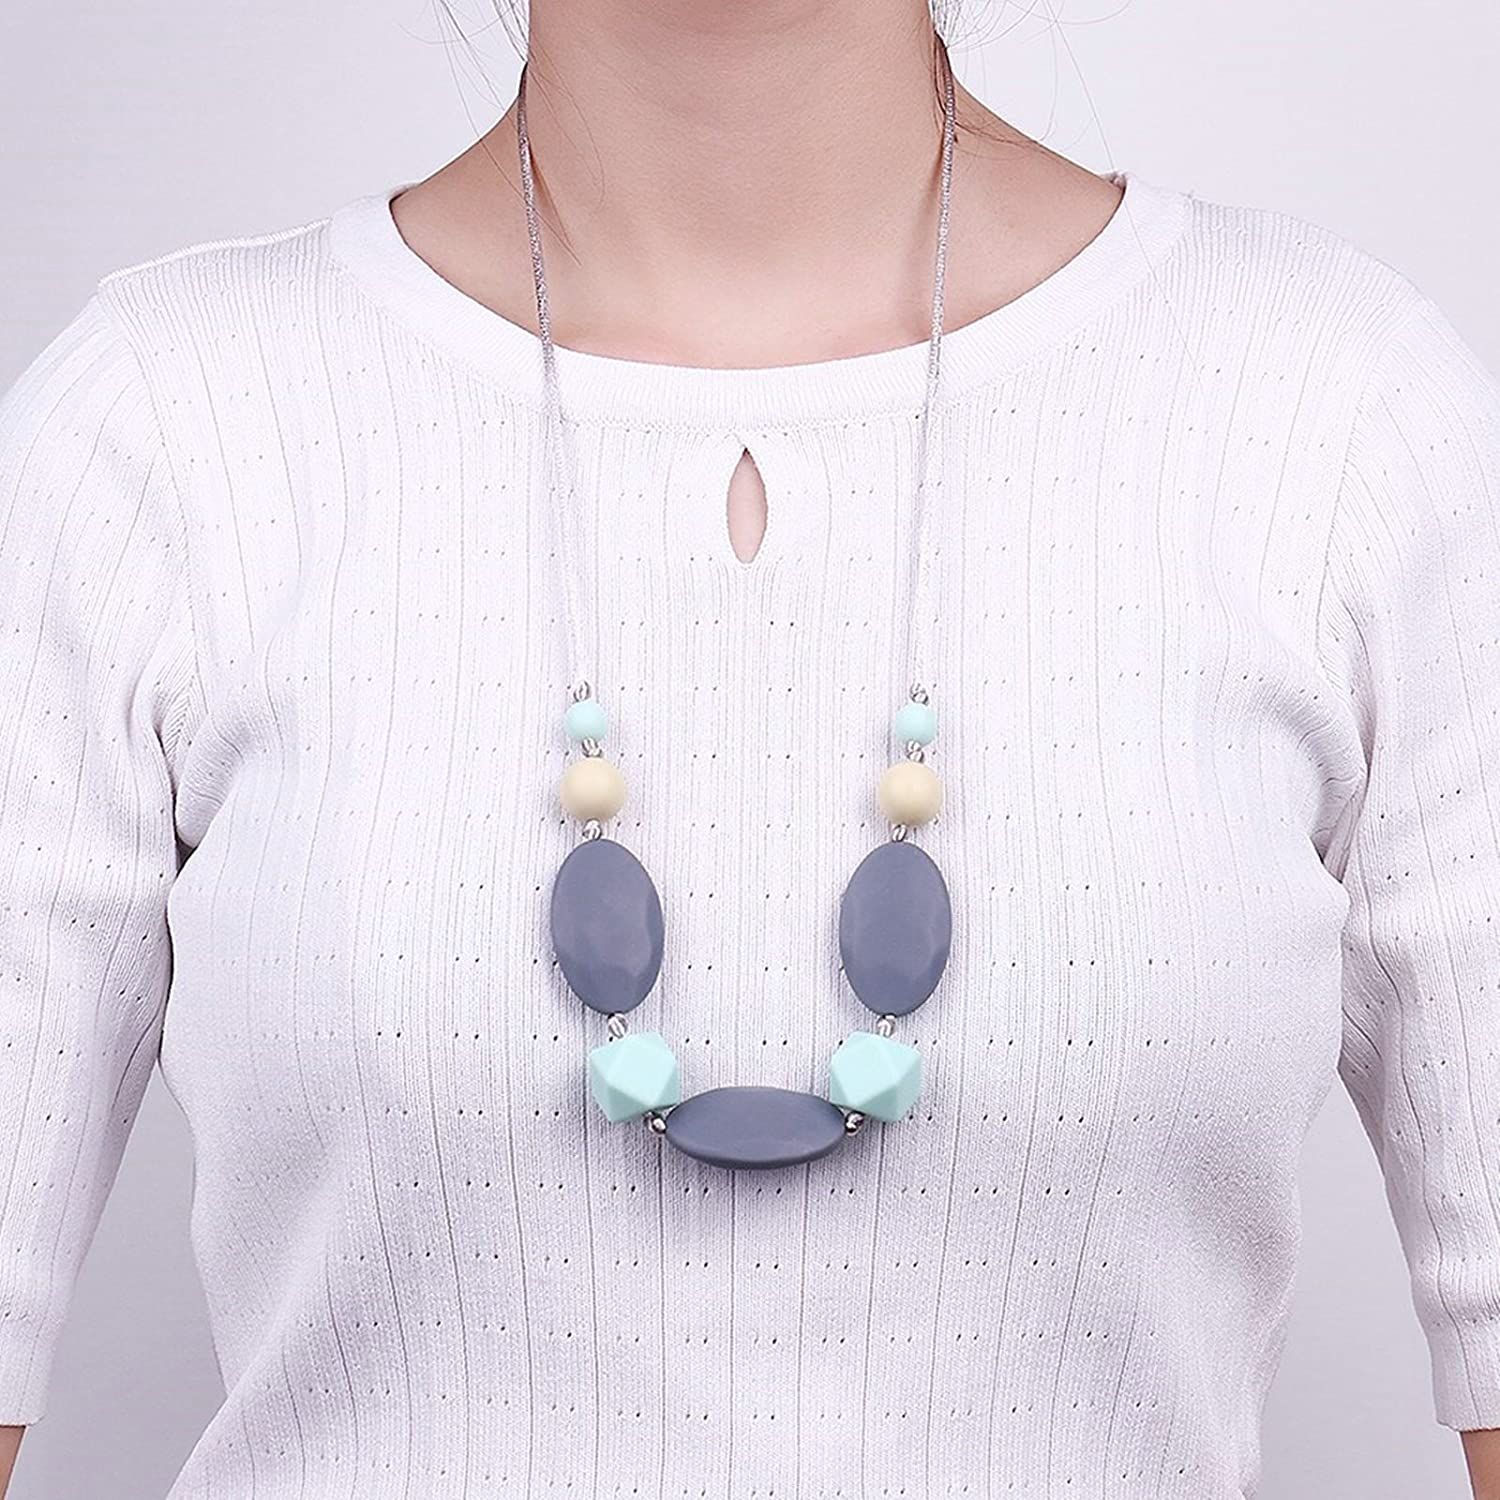 KnSam Silicone Teething Necklace for Women and Baby Oval Irregular Cube Color Chain Length 80CM